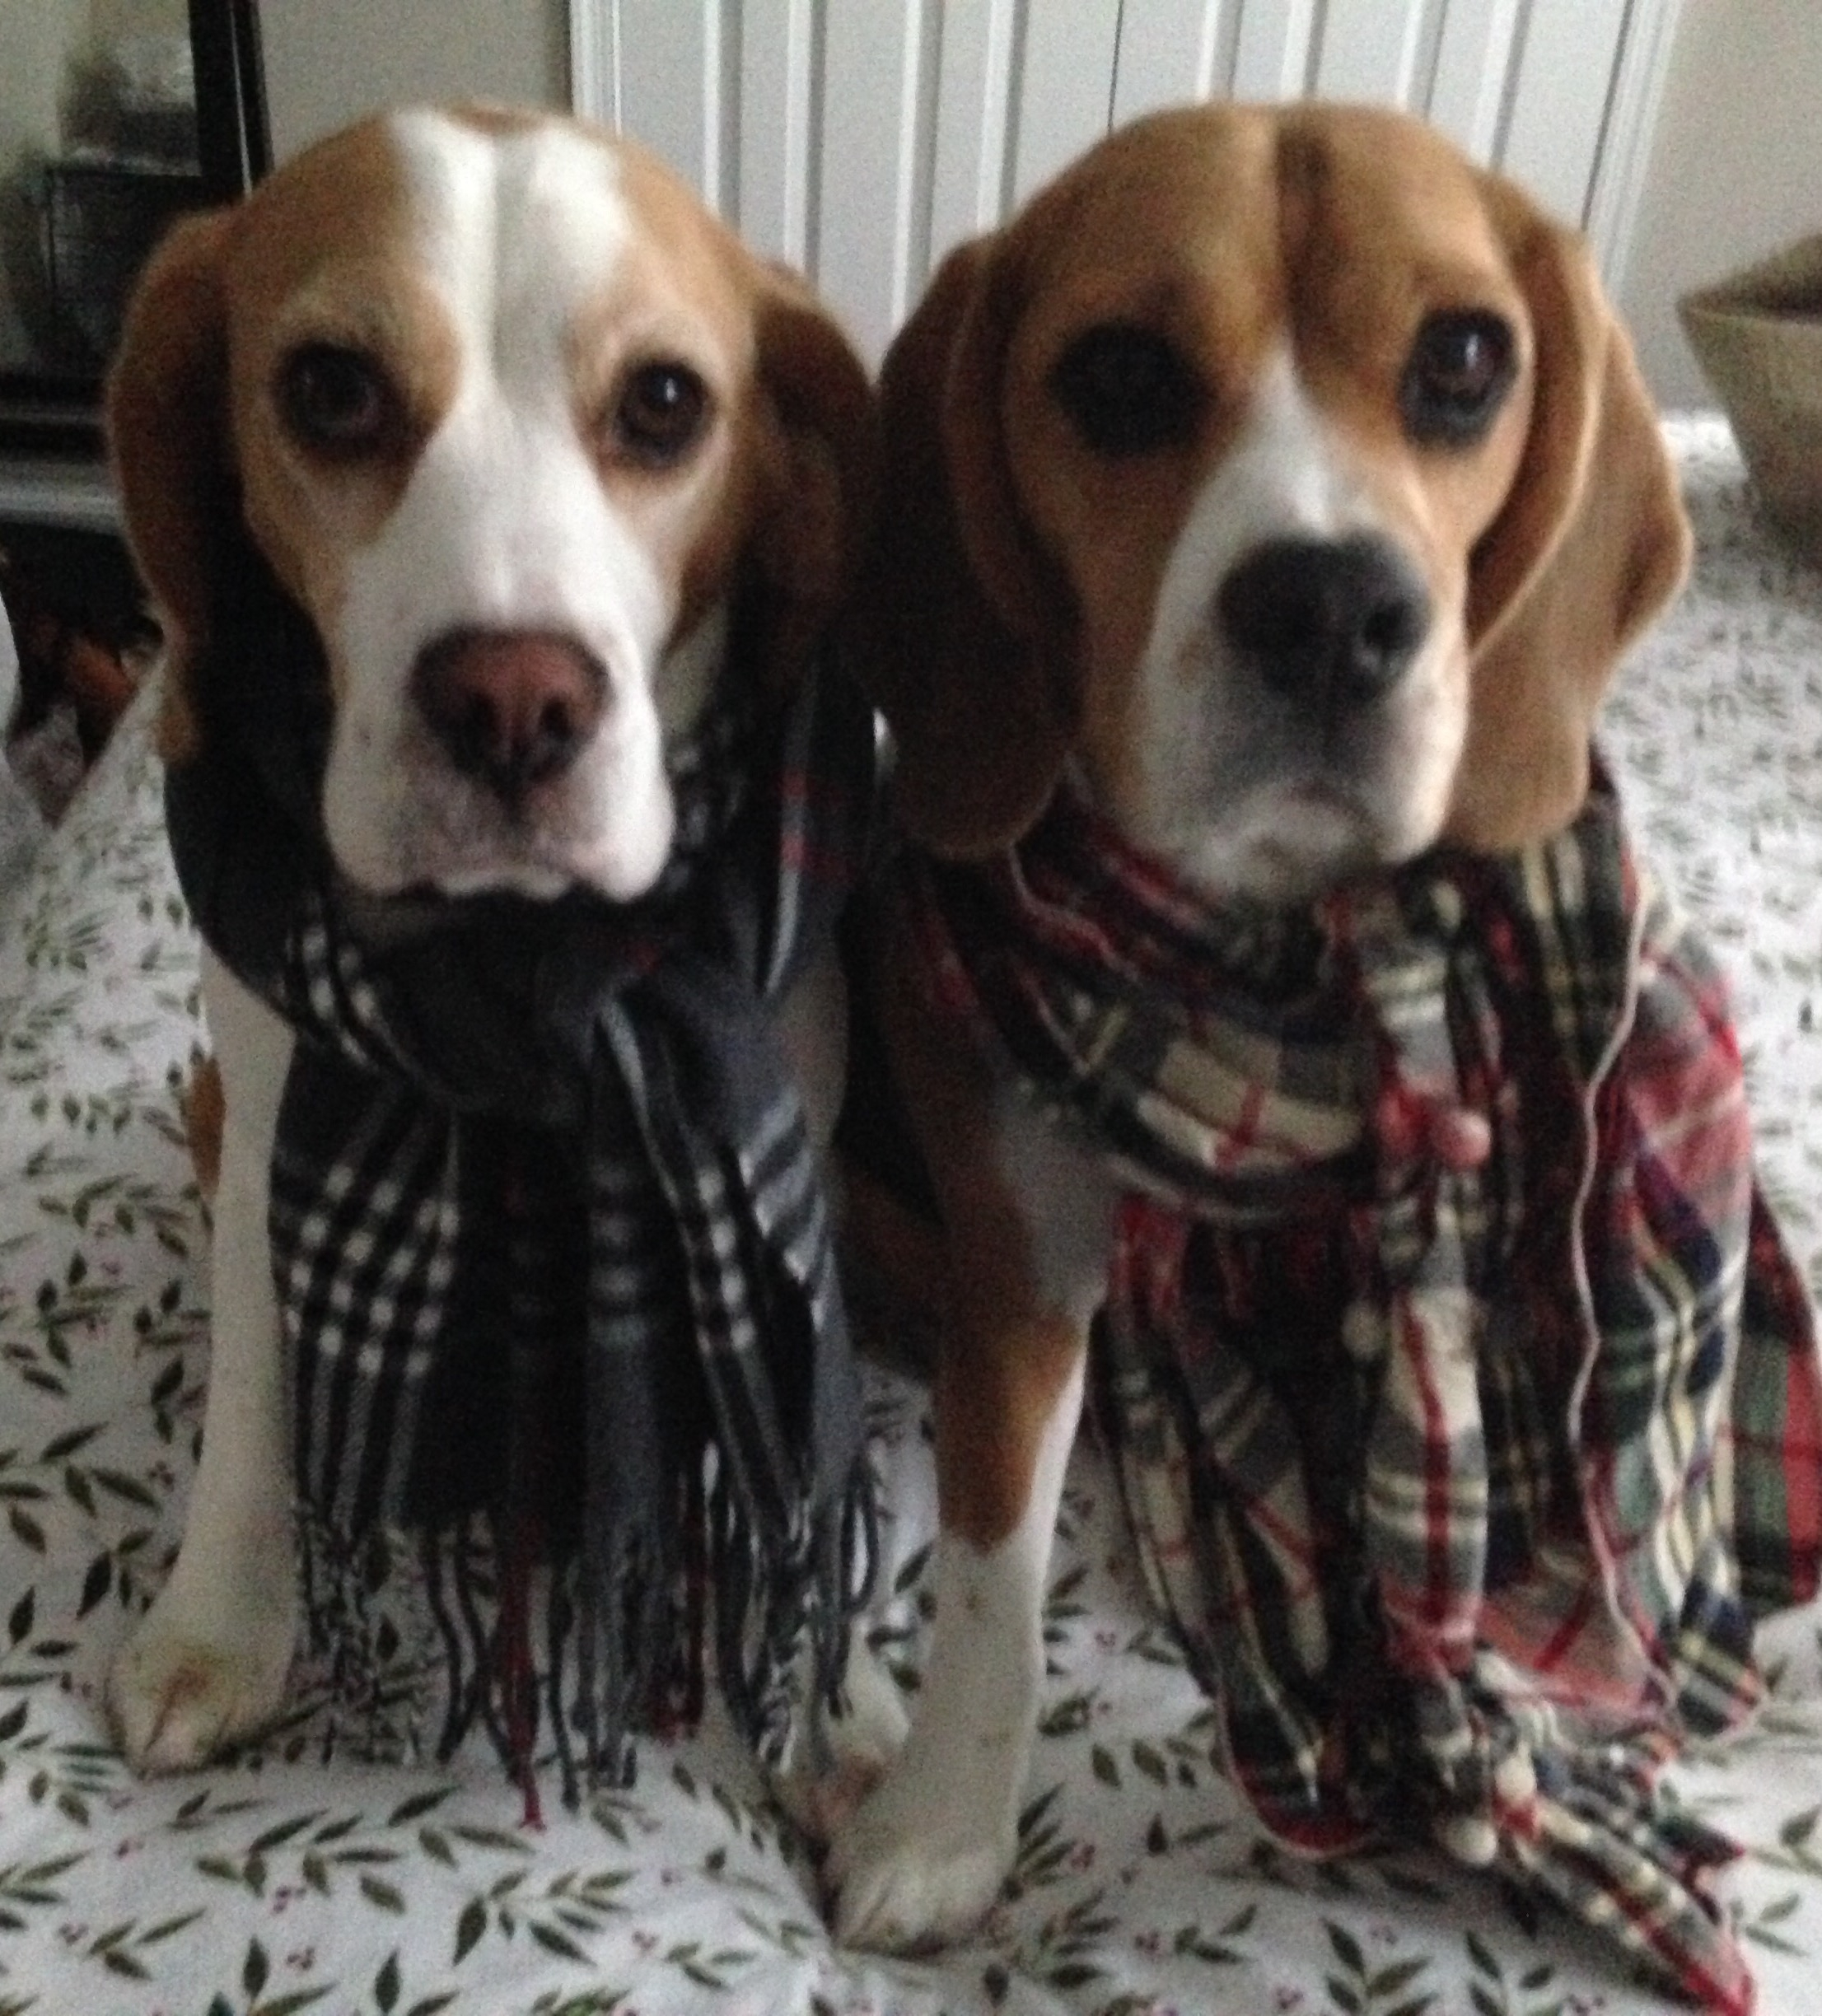 Clark and Kent (@TheSuperBeagles on Insta) getting into the holiday spirit!